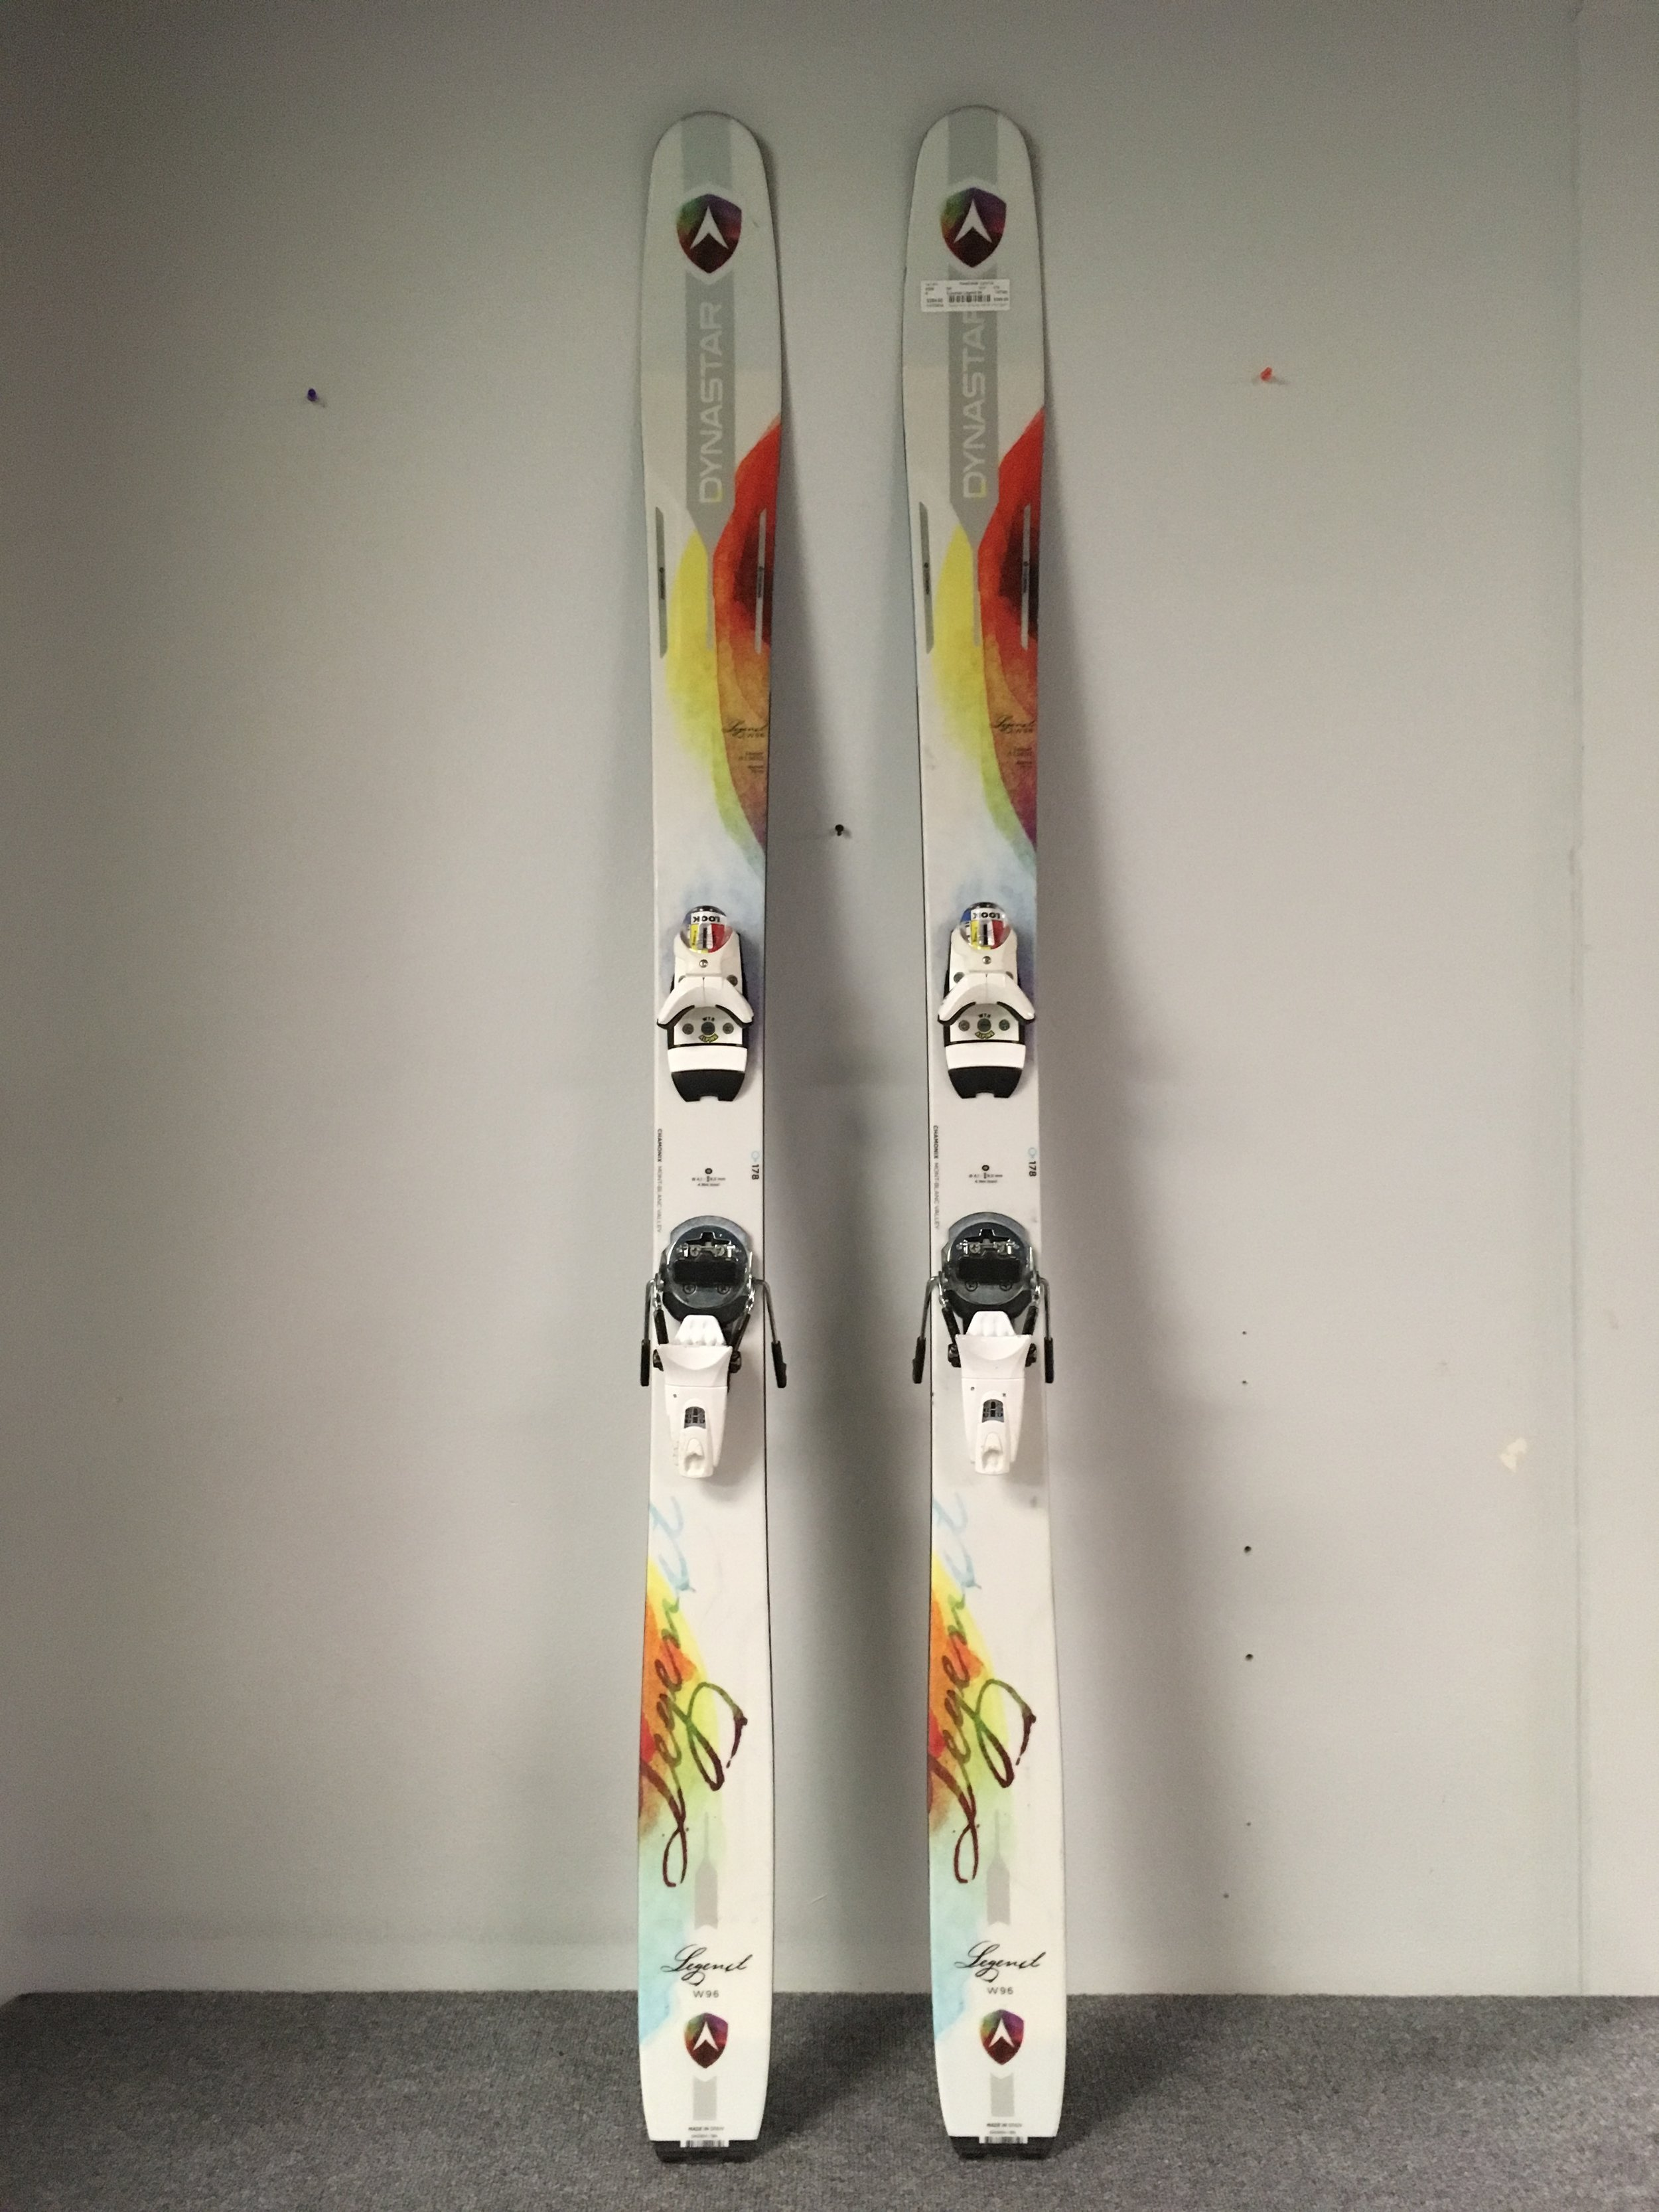 Dynastar's Legend 96 is back this year! A perfect all mountain ski with Look's Dual WTR 14 binding mounted to it. The Sticks are listed at $649 (without bindings)but we have the complete set up priced at $399! The length is 178.